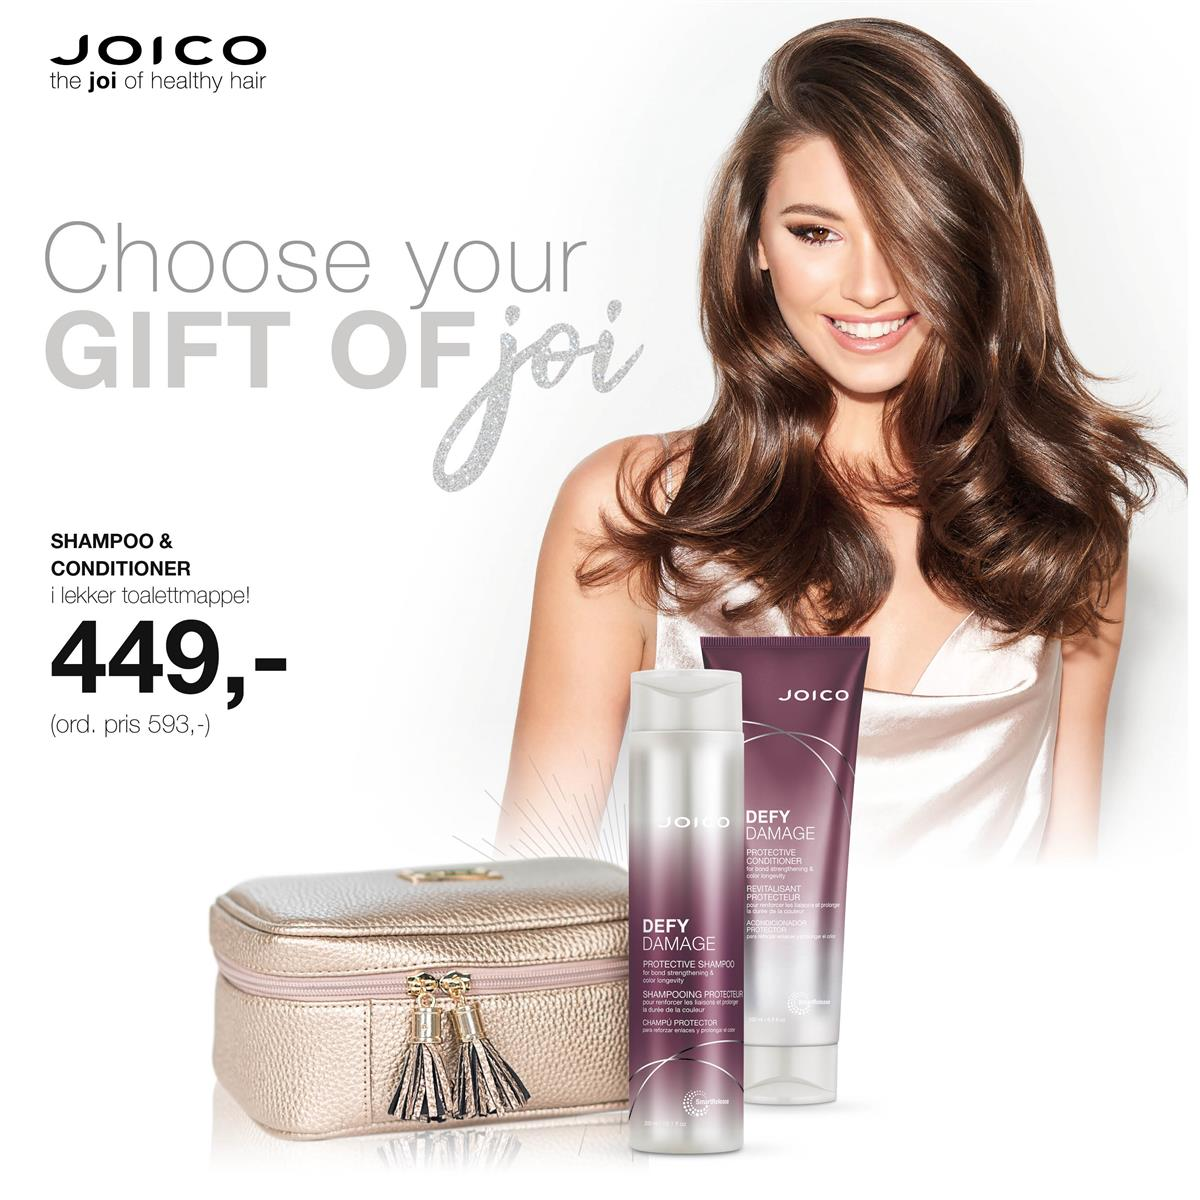 JOICO DEFY DAMAGE - KAMPANJE NOVEMBER 2019